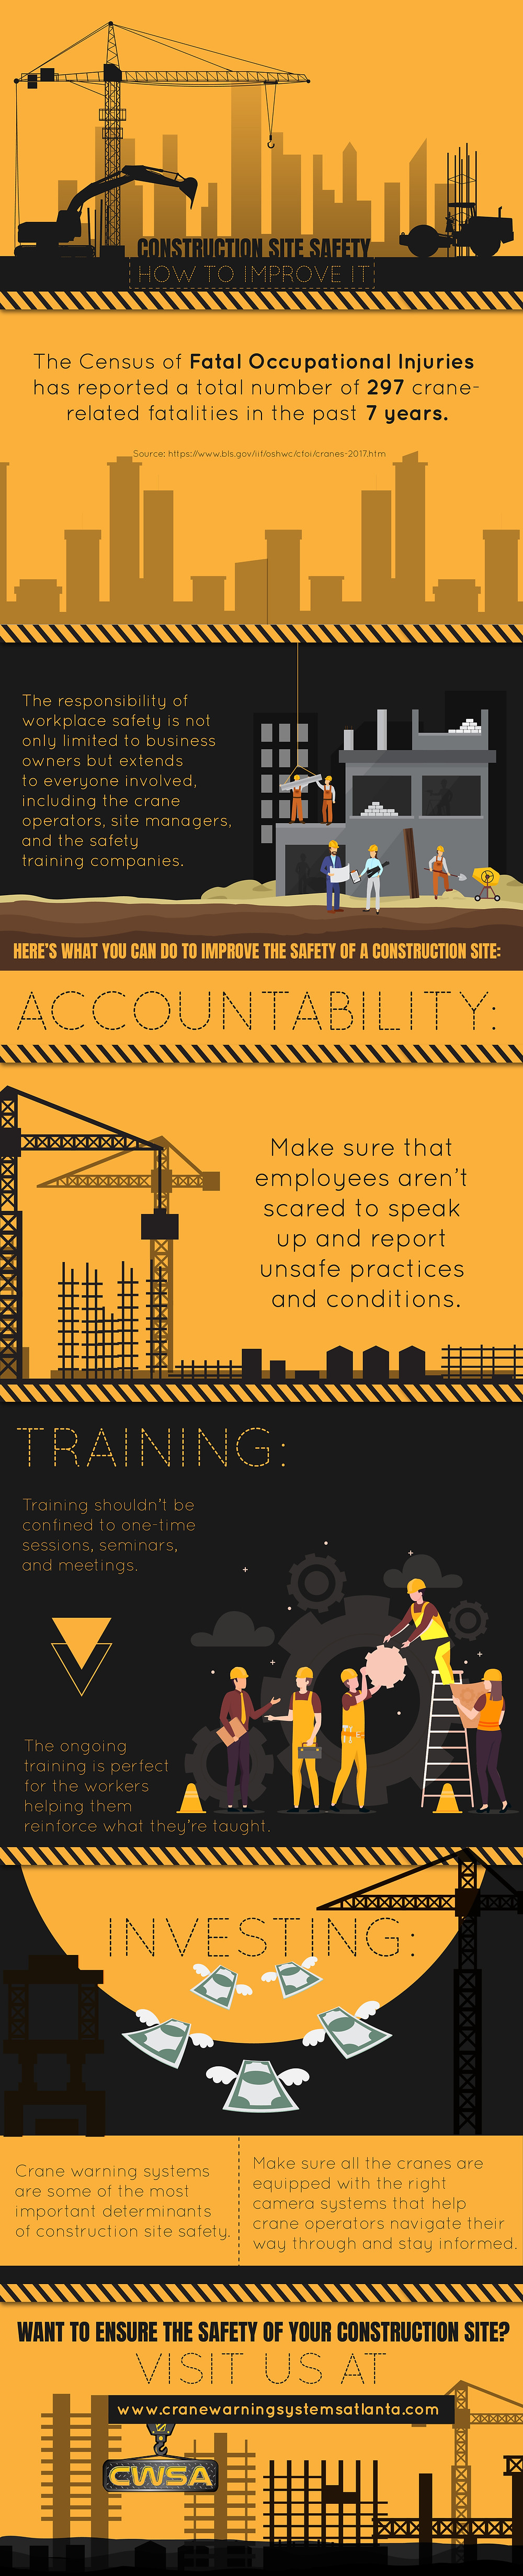 Construction Site Safety: How to improve it